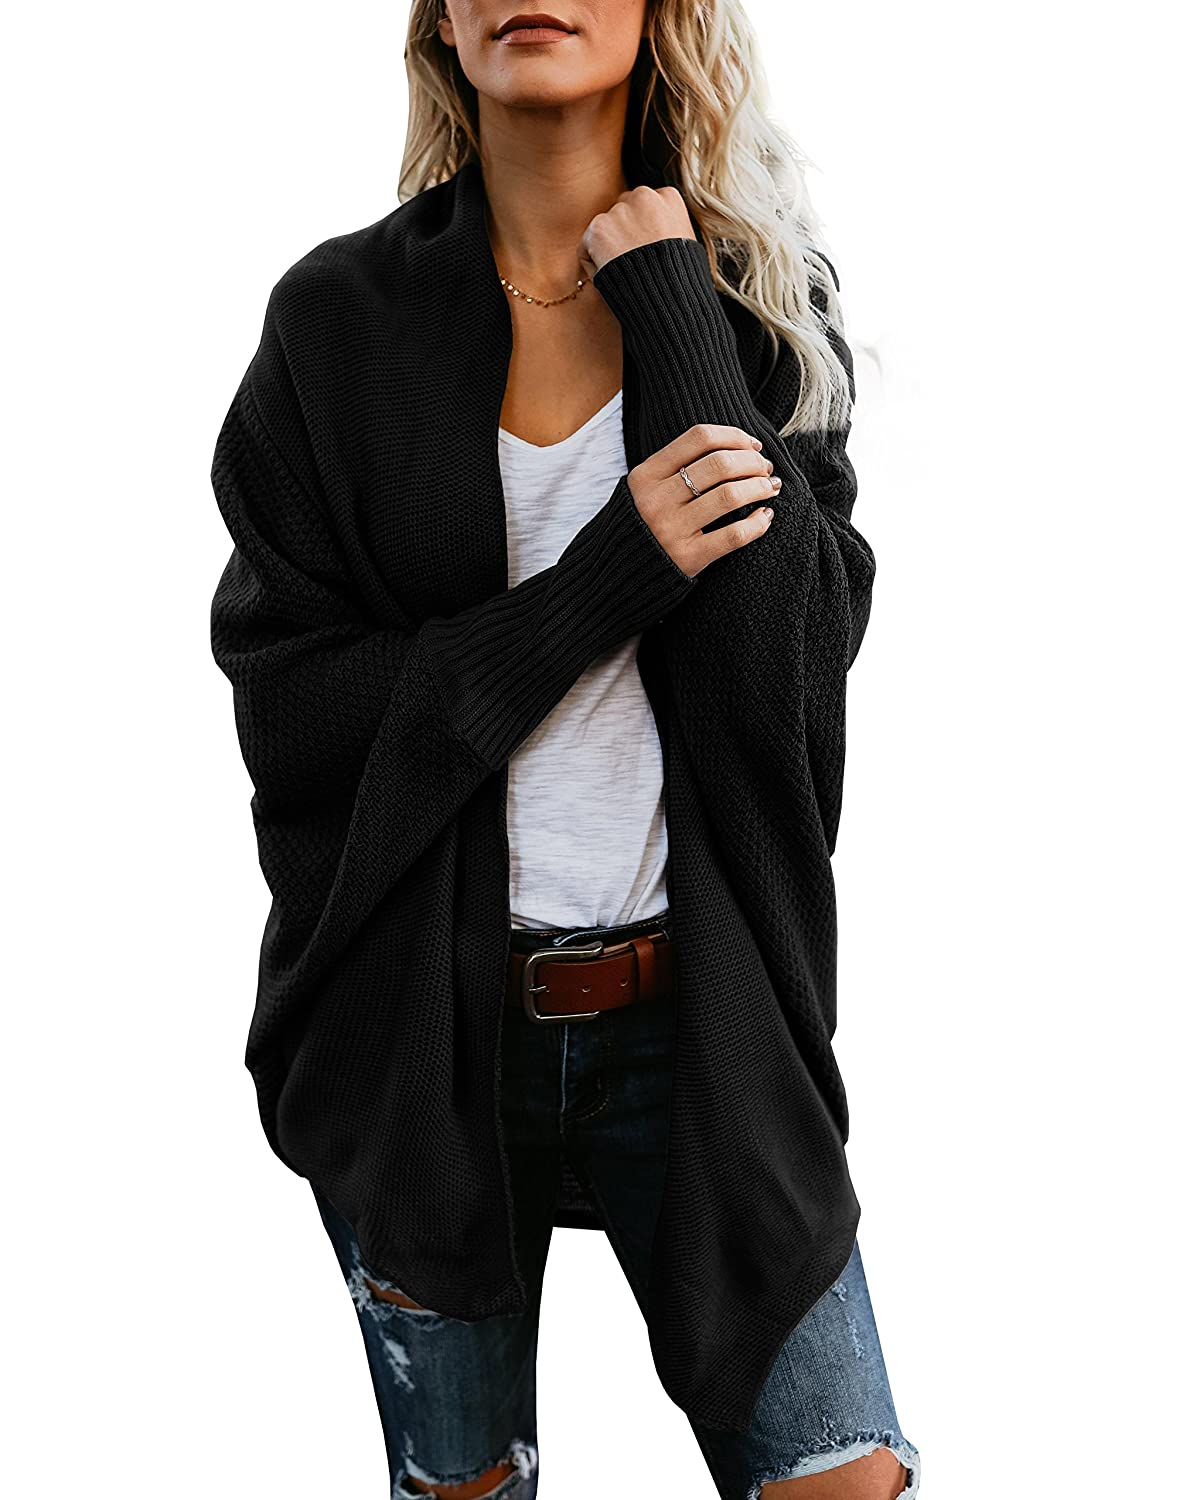 Black Mafulus Womens Cardigan Sweaters Oversized Open Front Batwing Chunky Knit Outwear